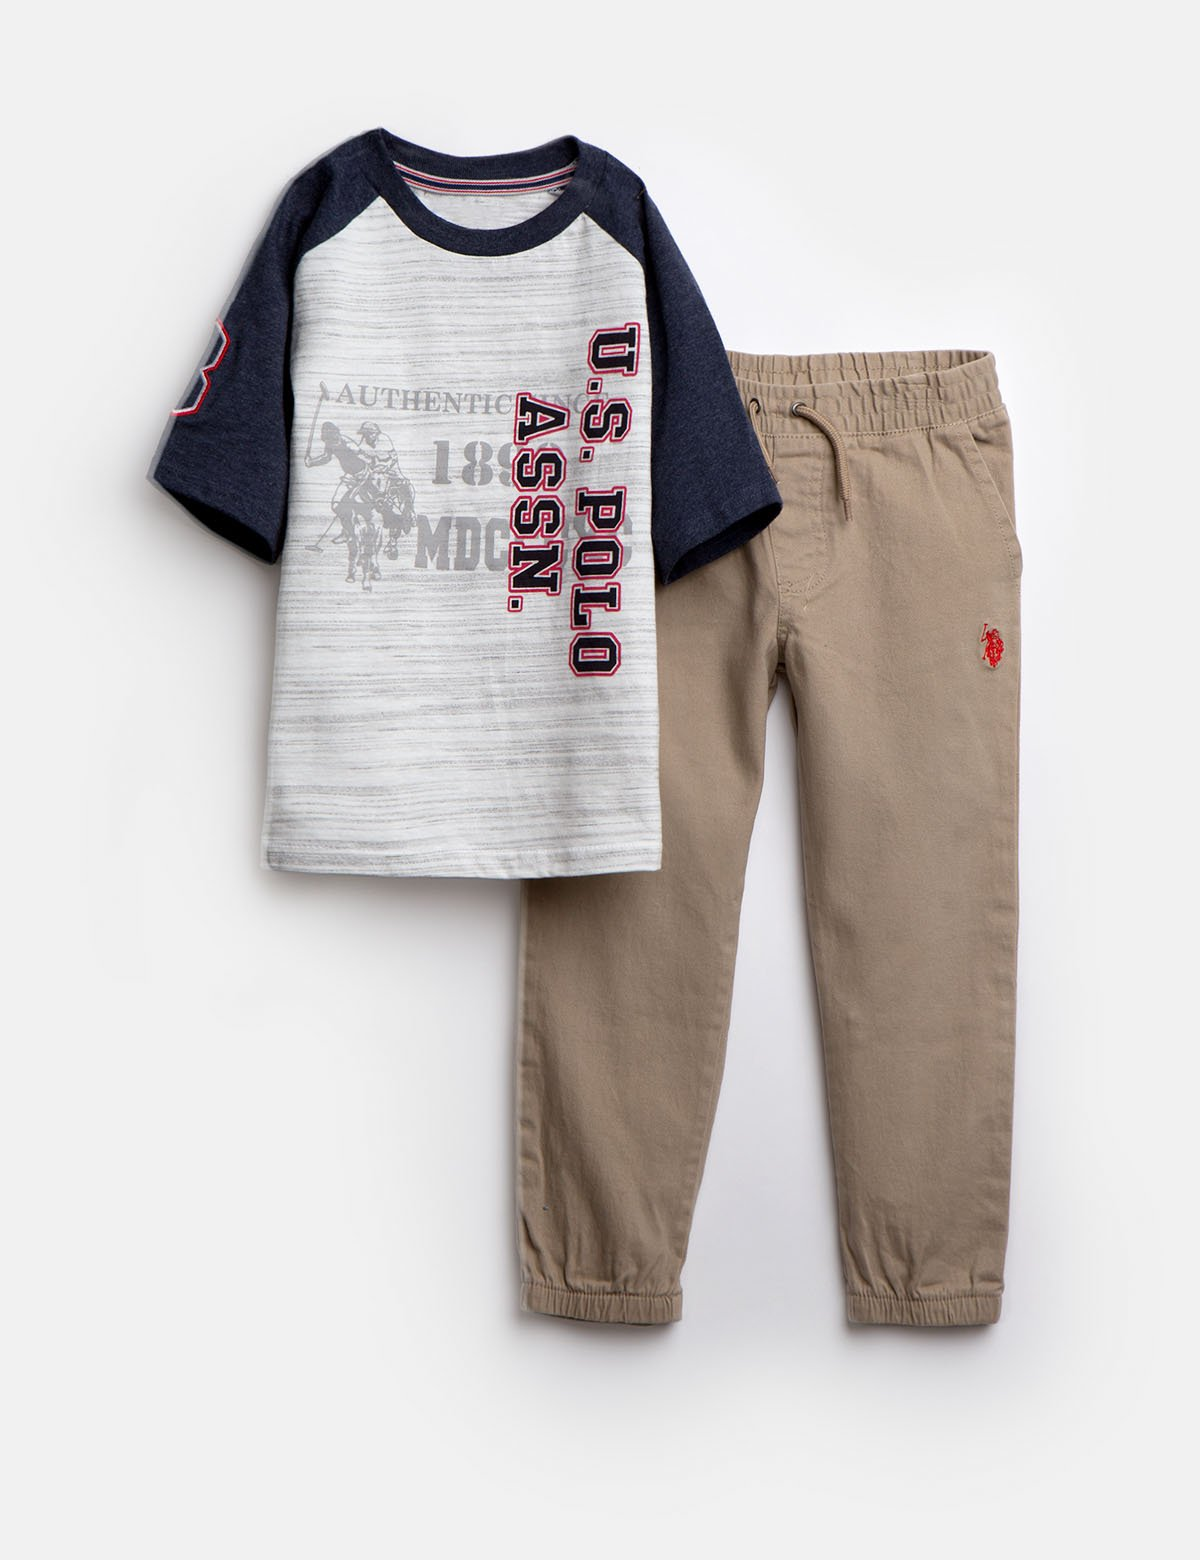 TODDLER 2 PIECE SET: TEE & JOGGERS